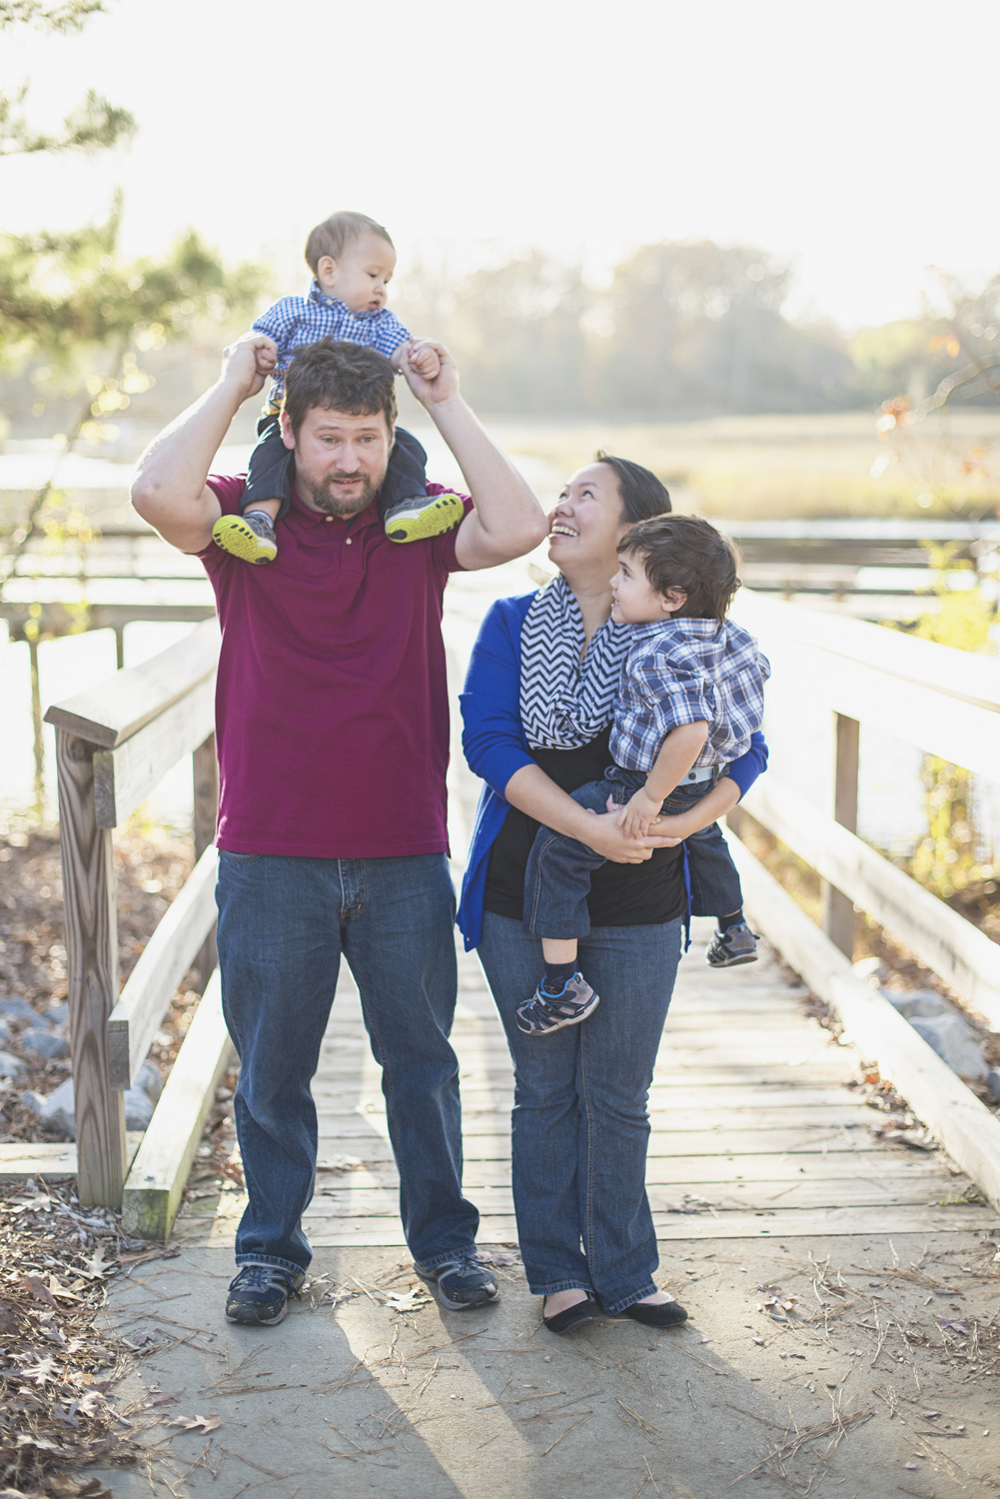 Suffolk, Virginia Family Photographer | Fall family picture ideas